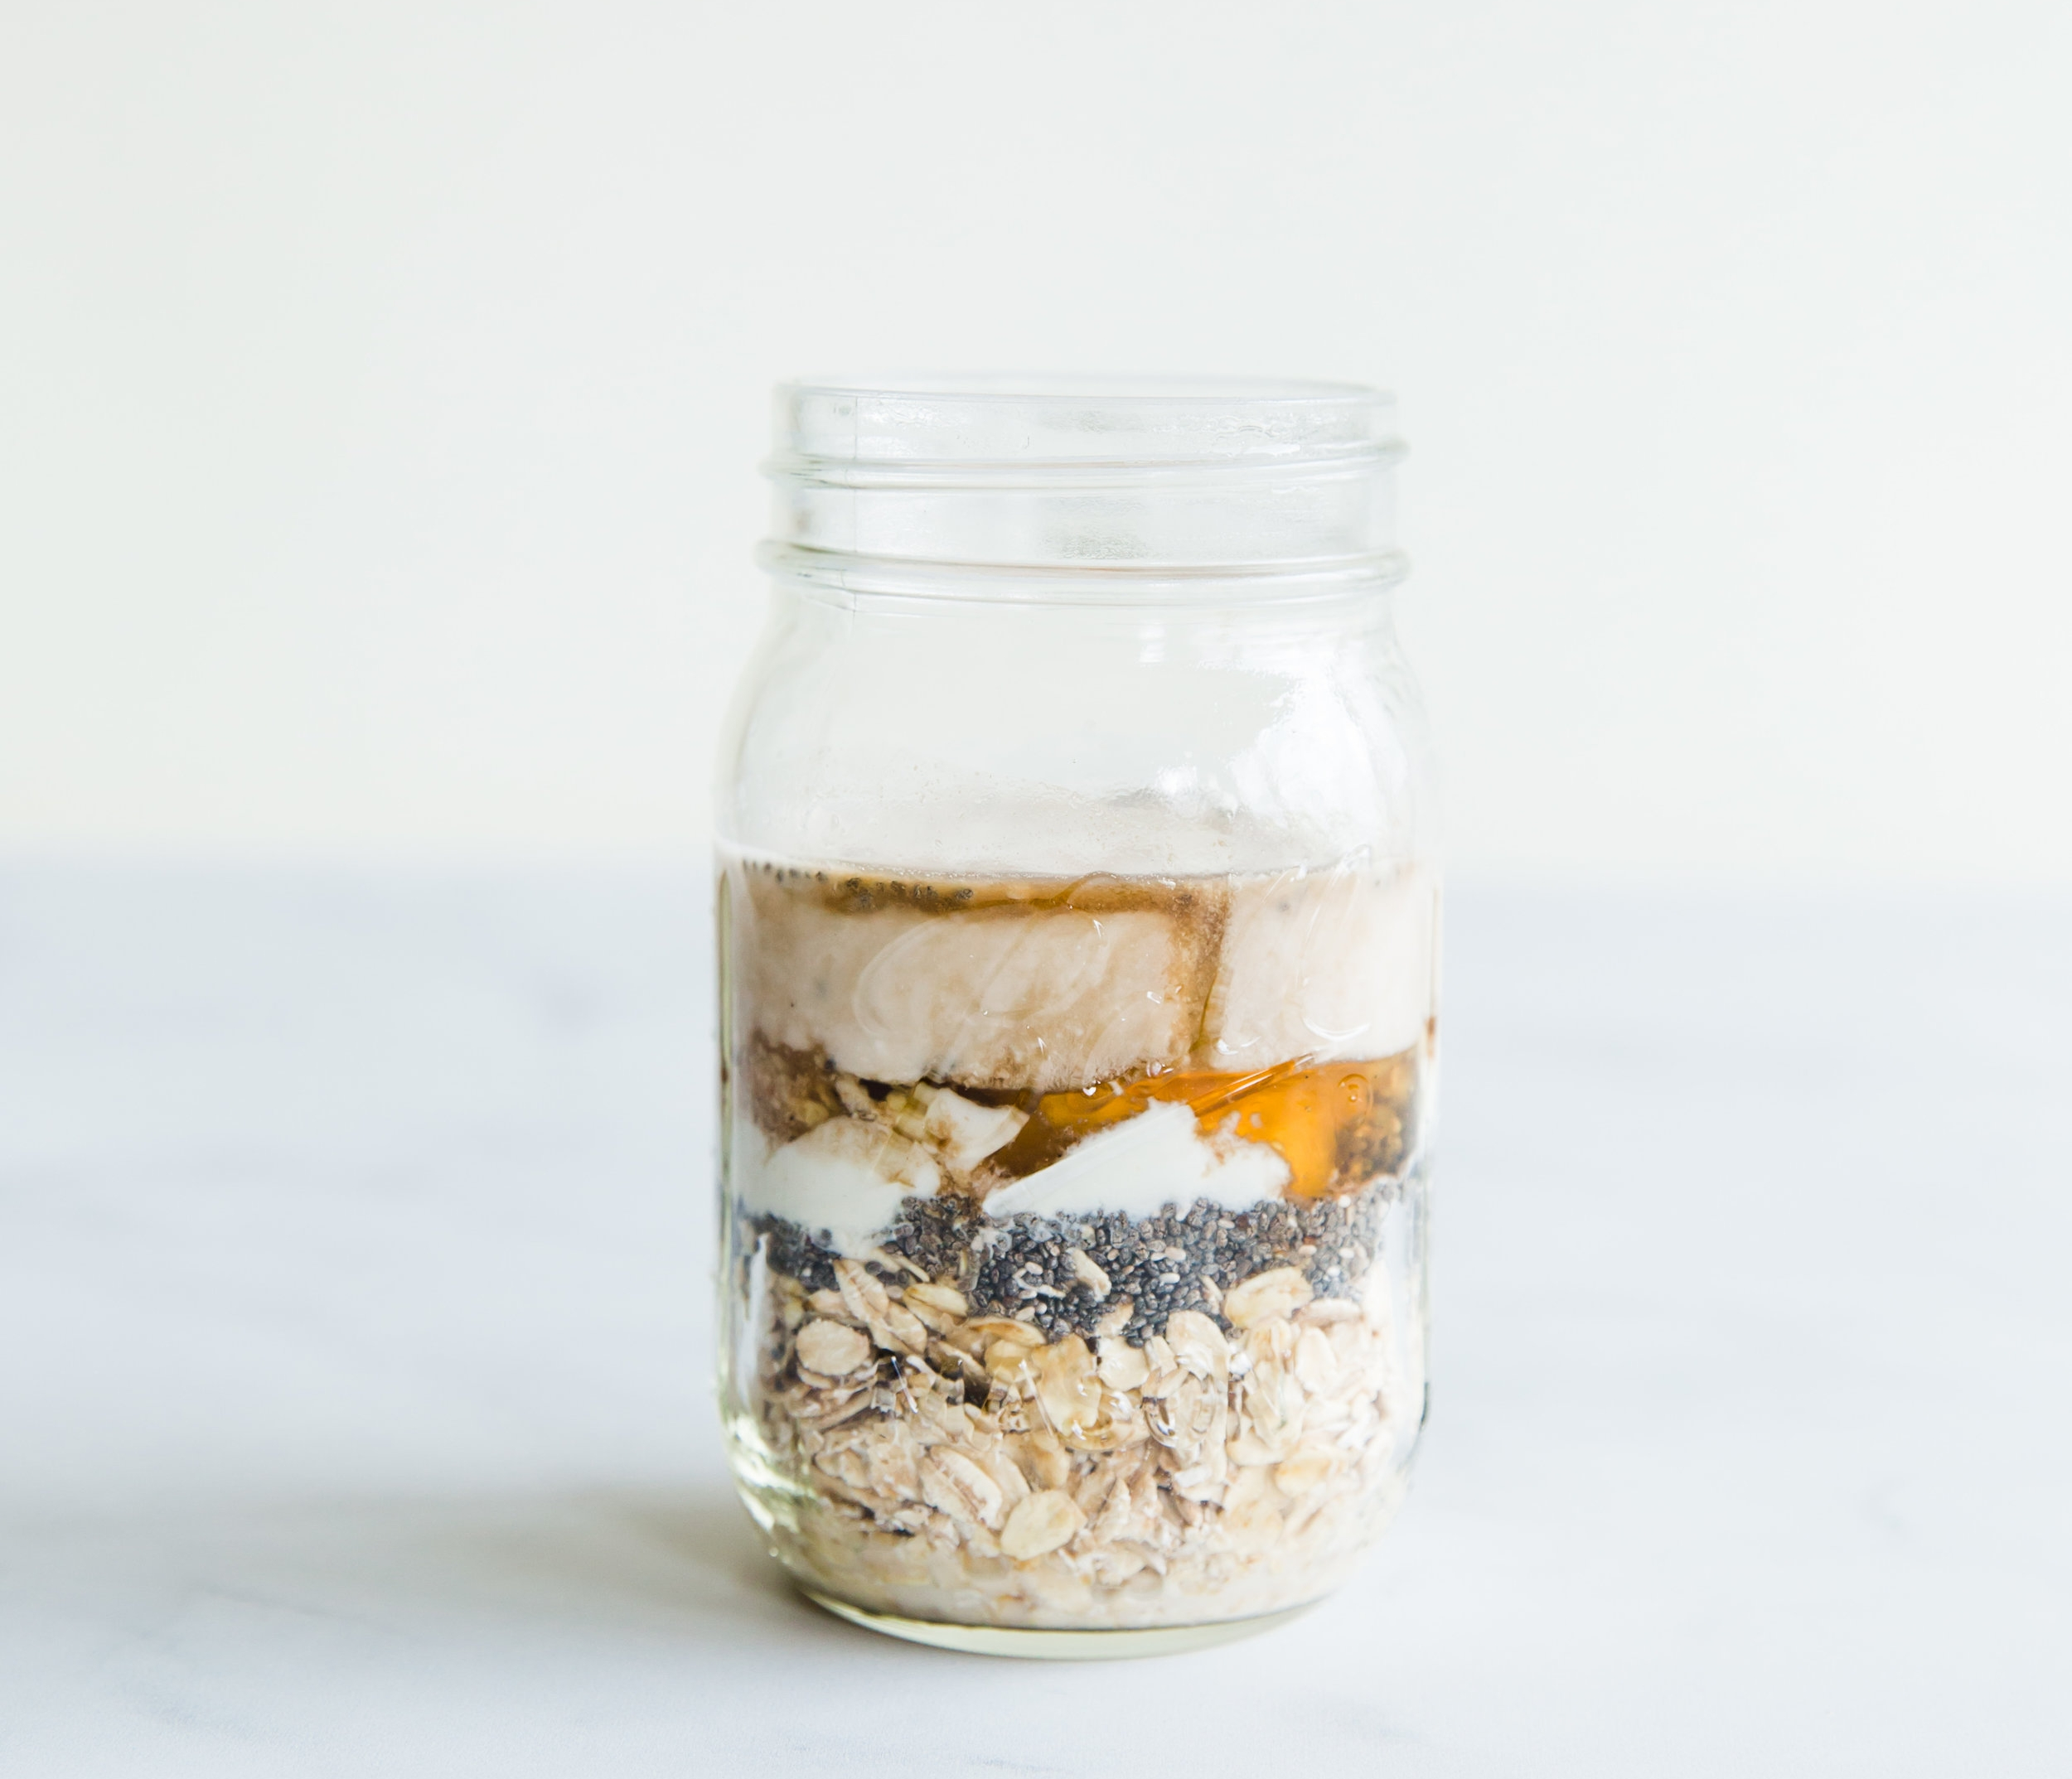 Over Night Oats Base - Layers